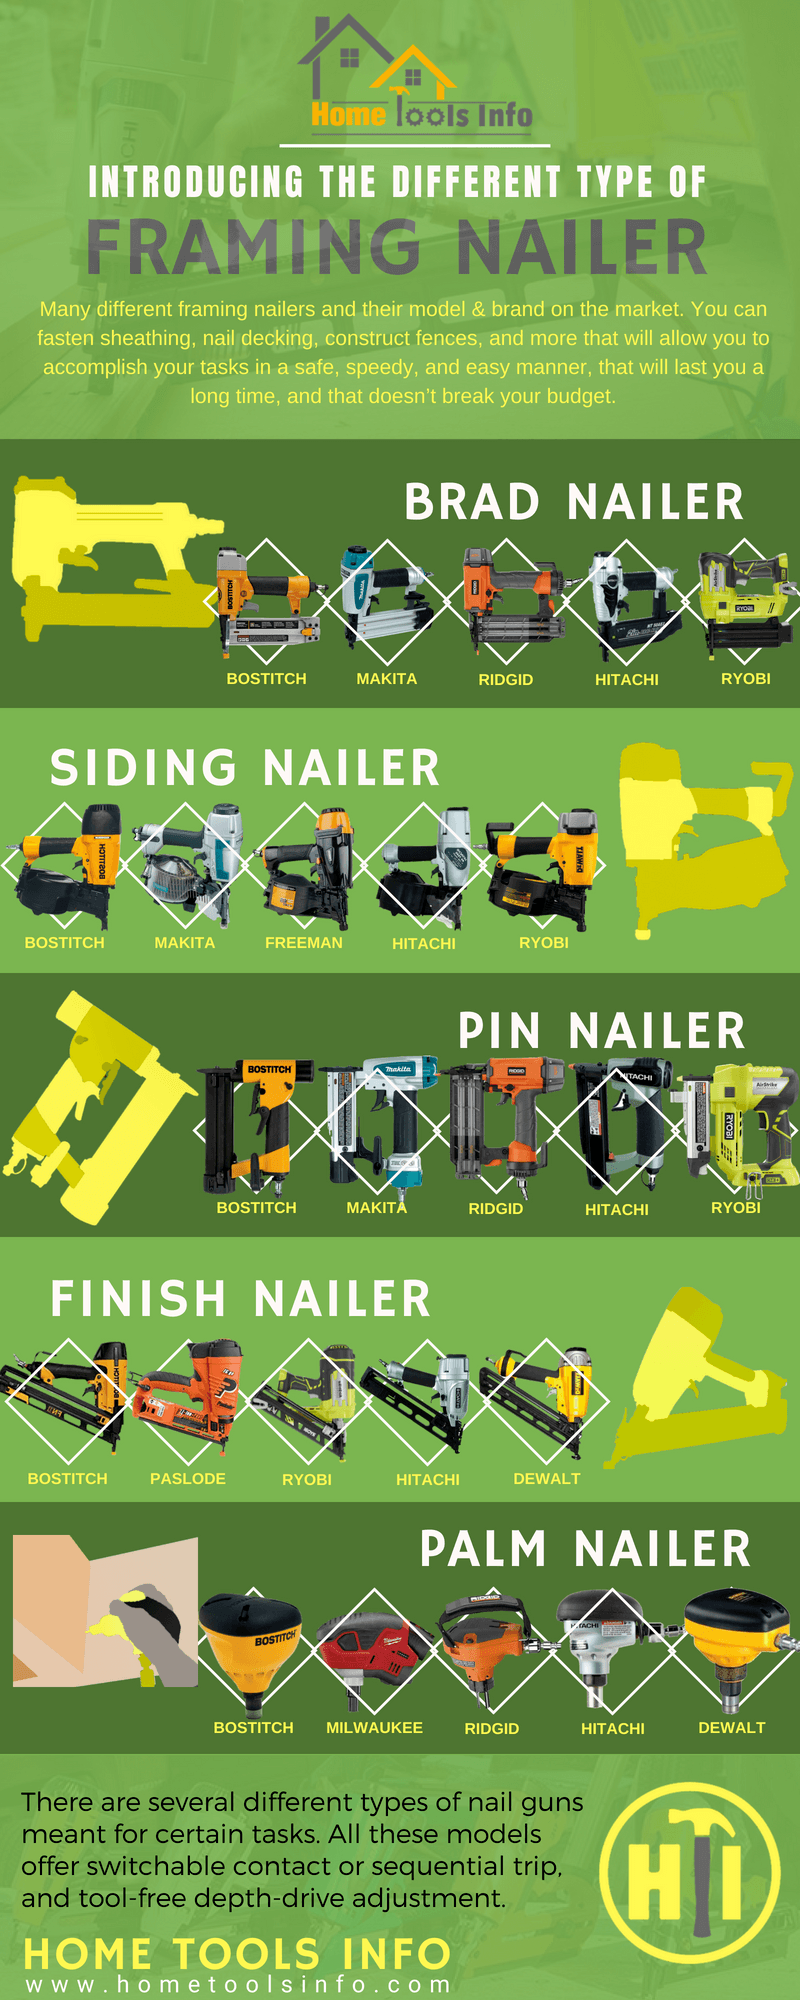 Different type of nailer infographic